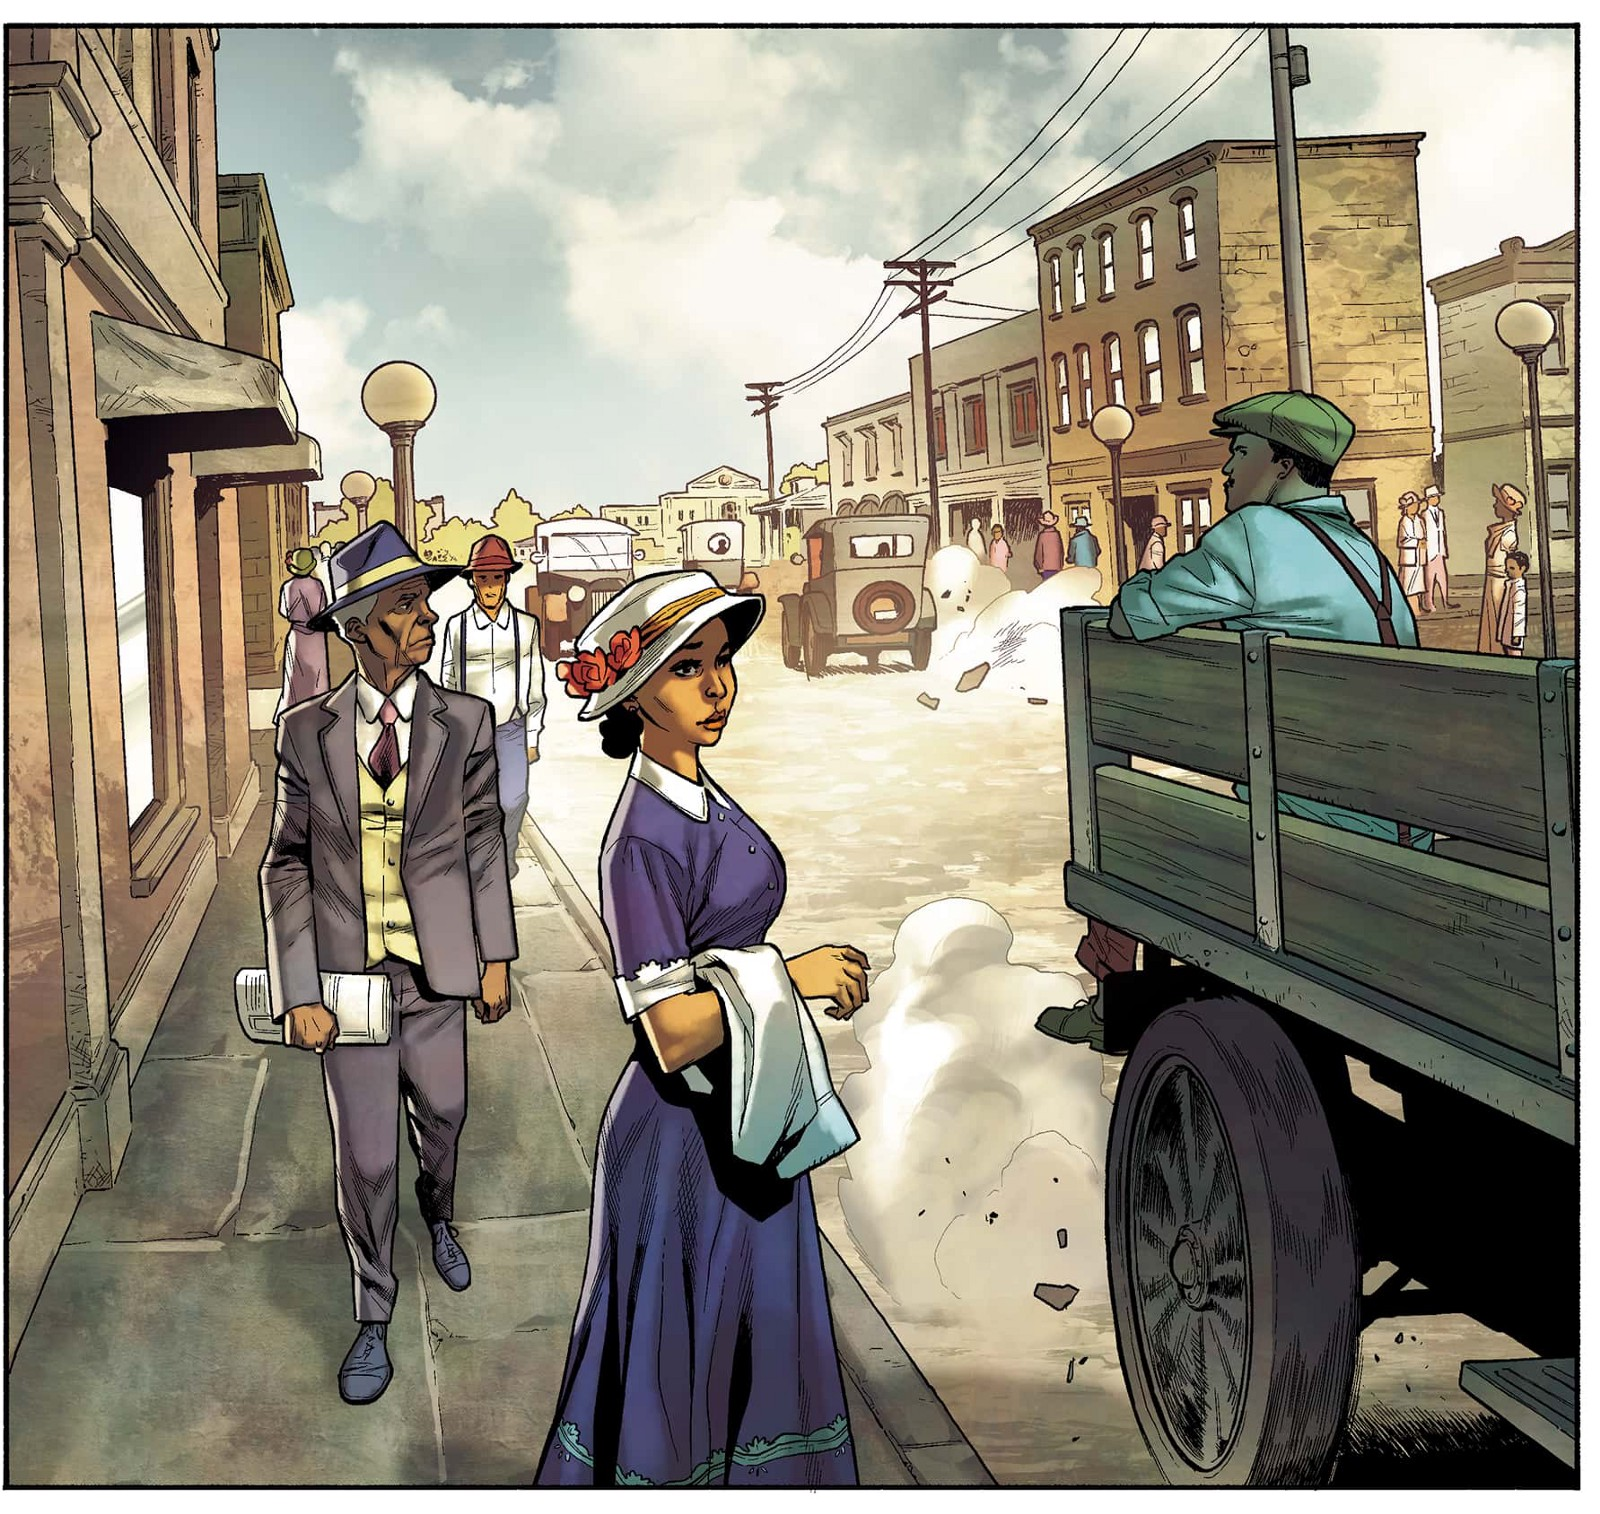 An illustration of a Black woman in what appears to be 19th century America.